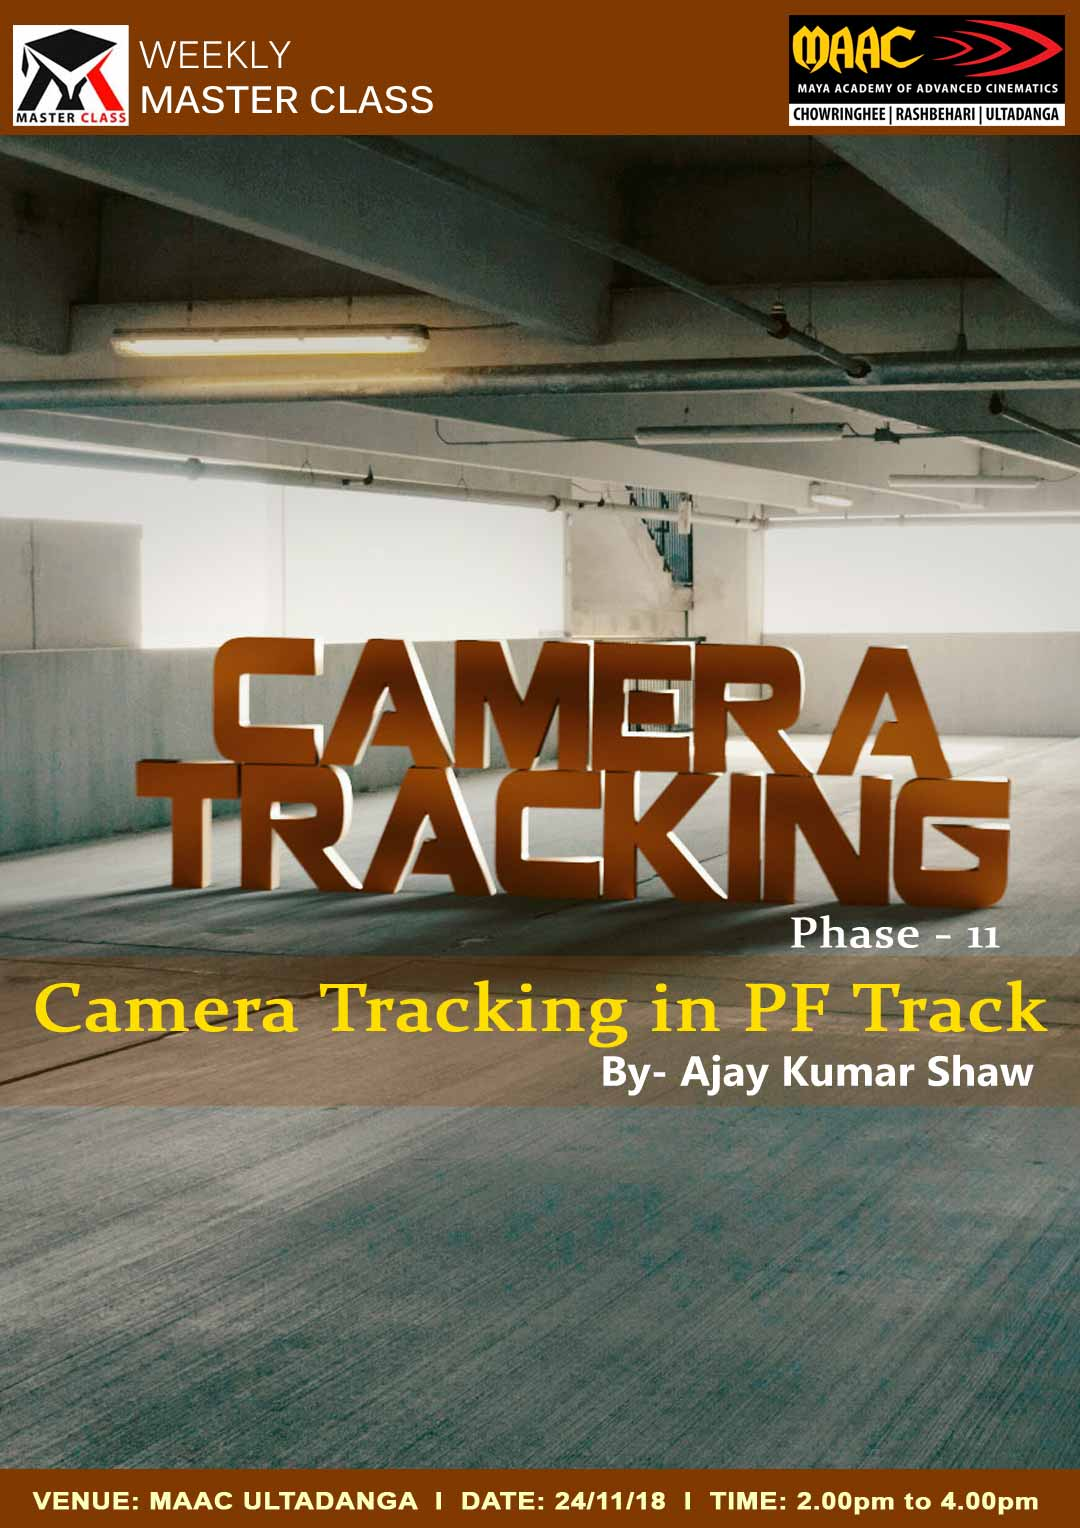 Weekly Master Class on Camera Tracking Phase 2